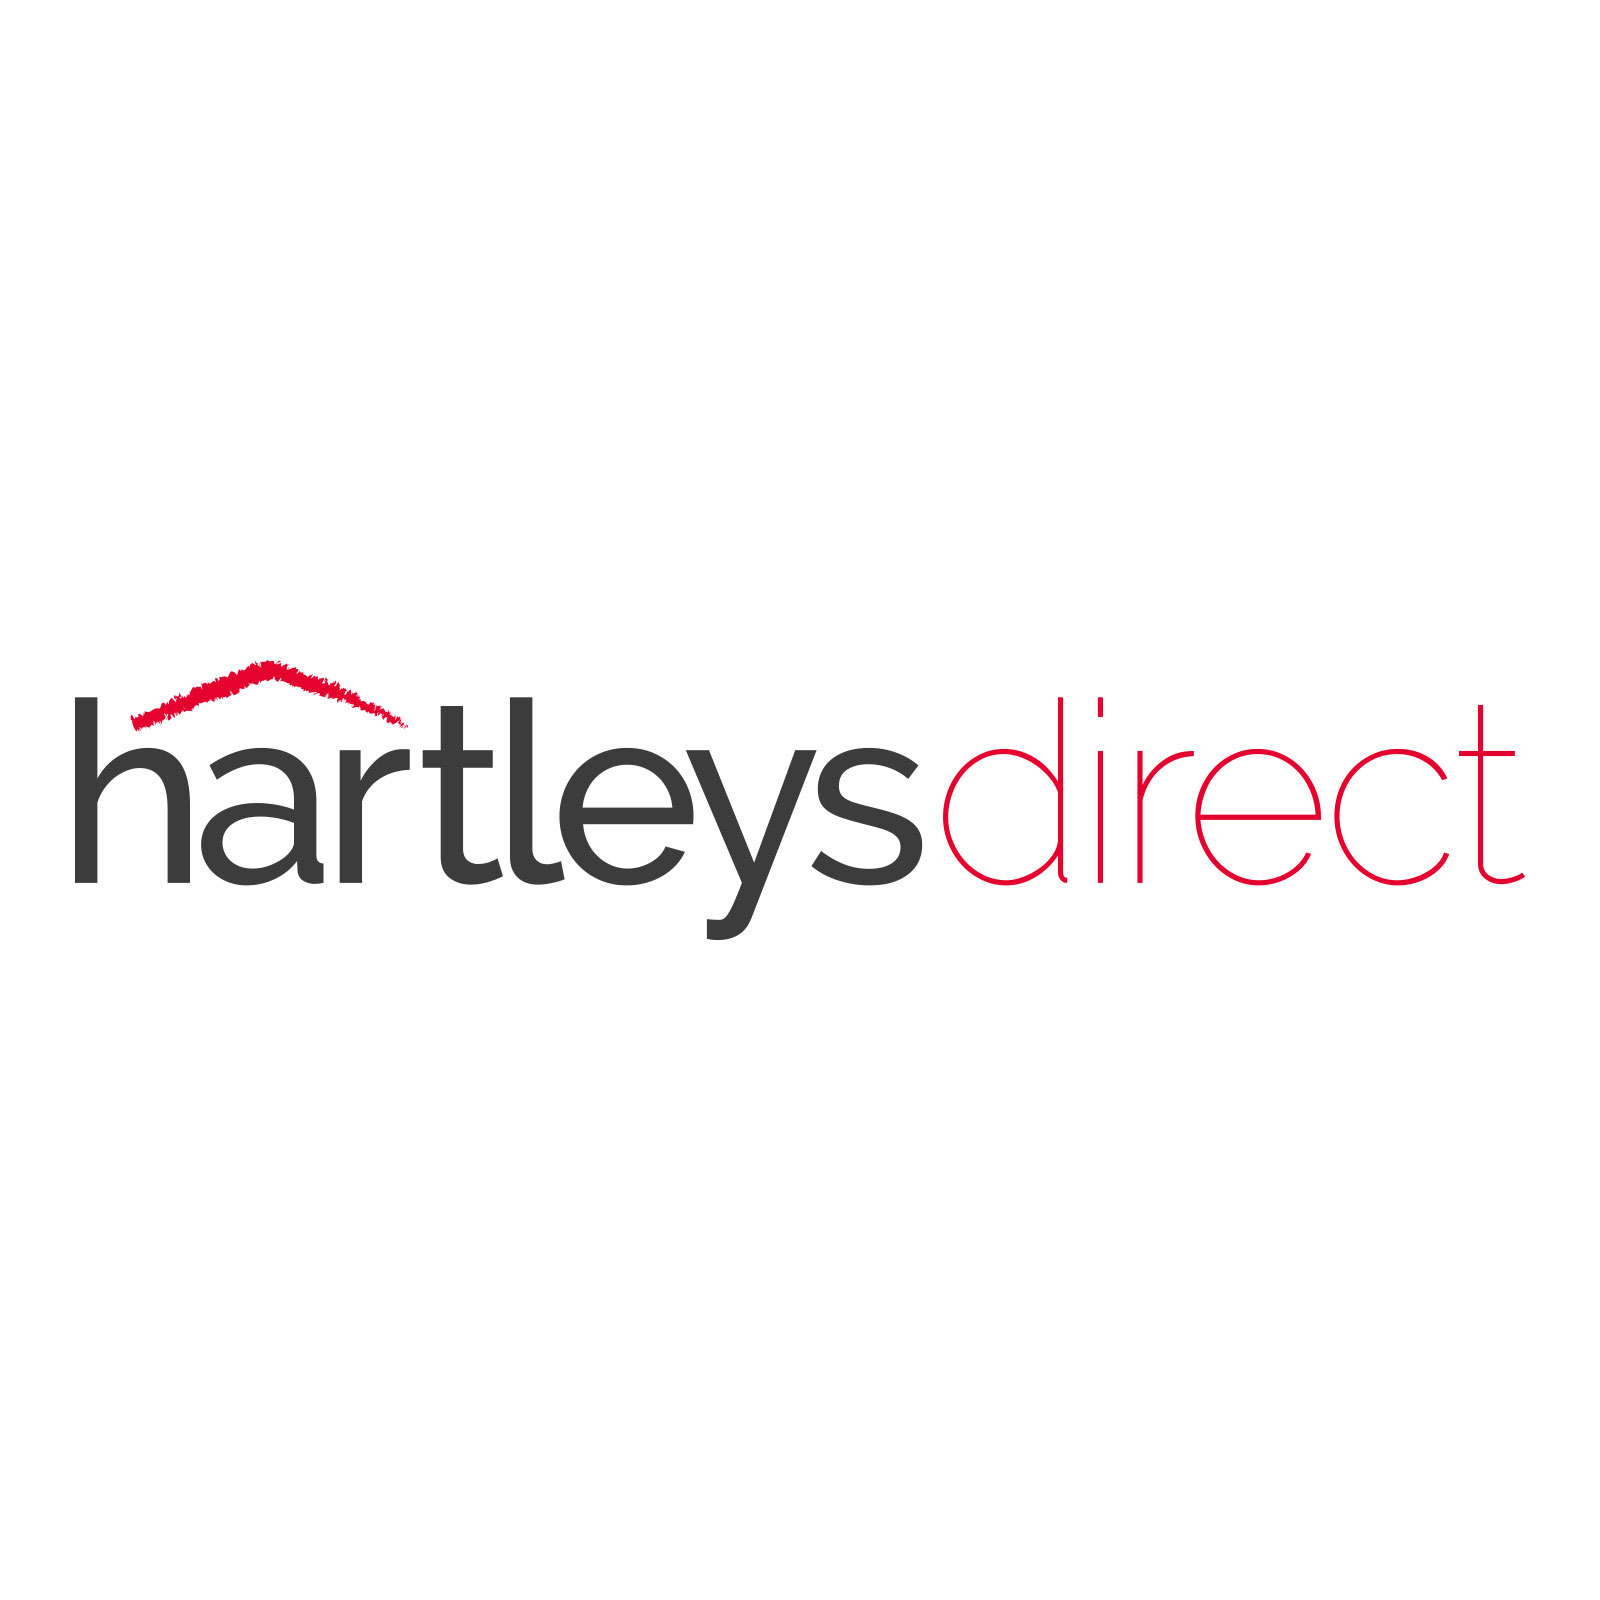 Hartleys-4-Tier-White-Cube-Unit-and-4-White-Boxes-with-Colour-Swatches-on-White-Background.jpg